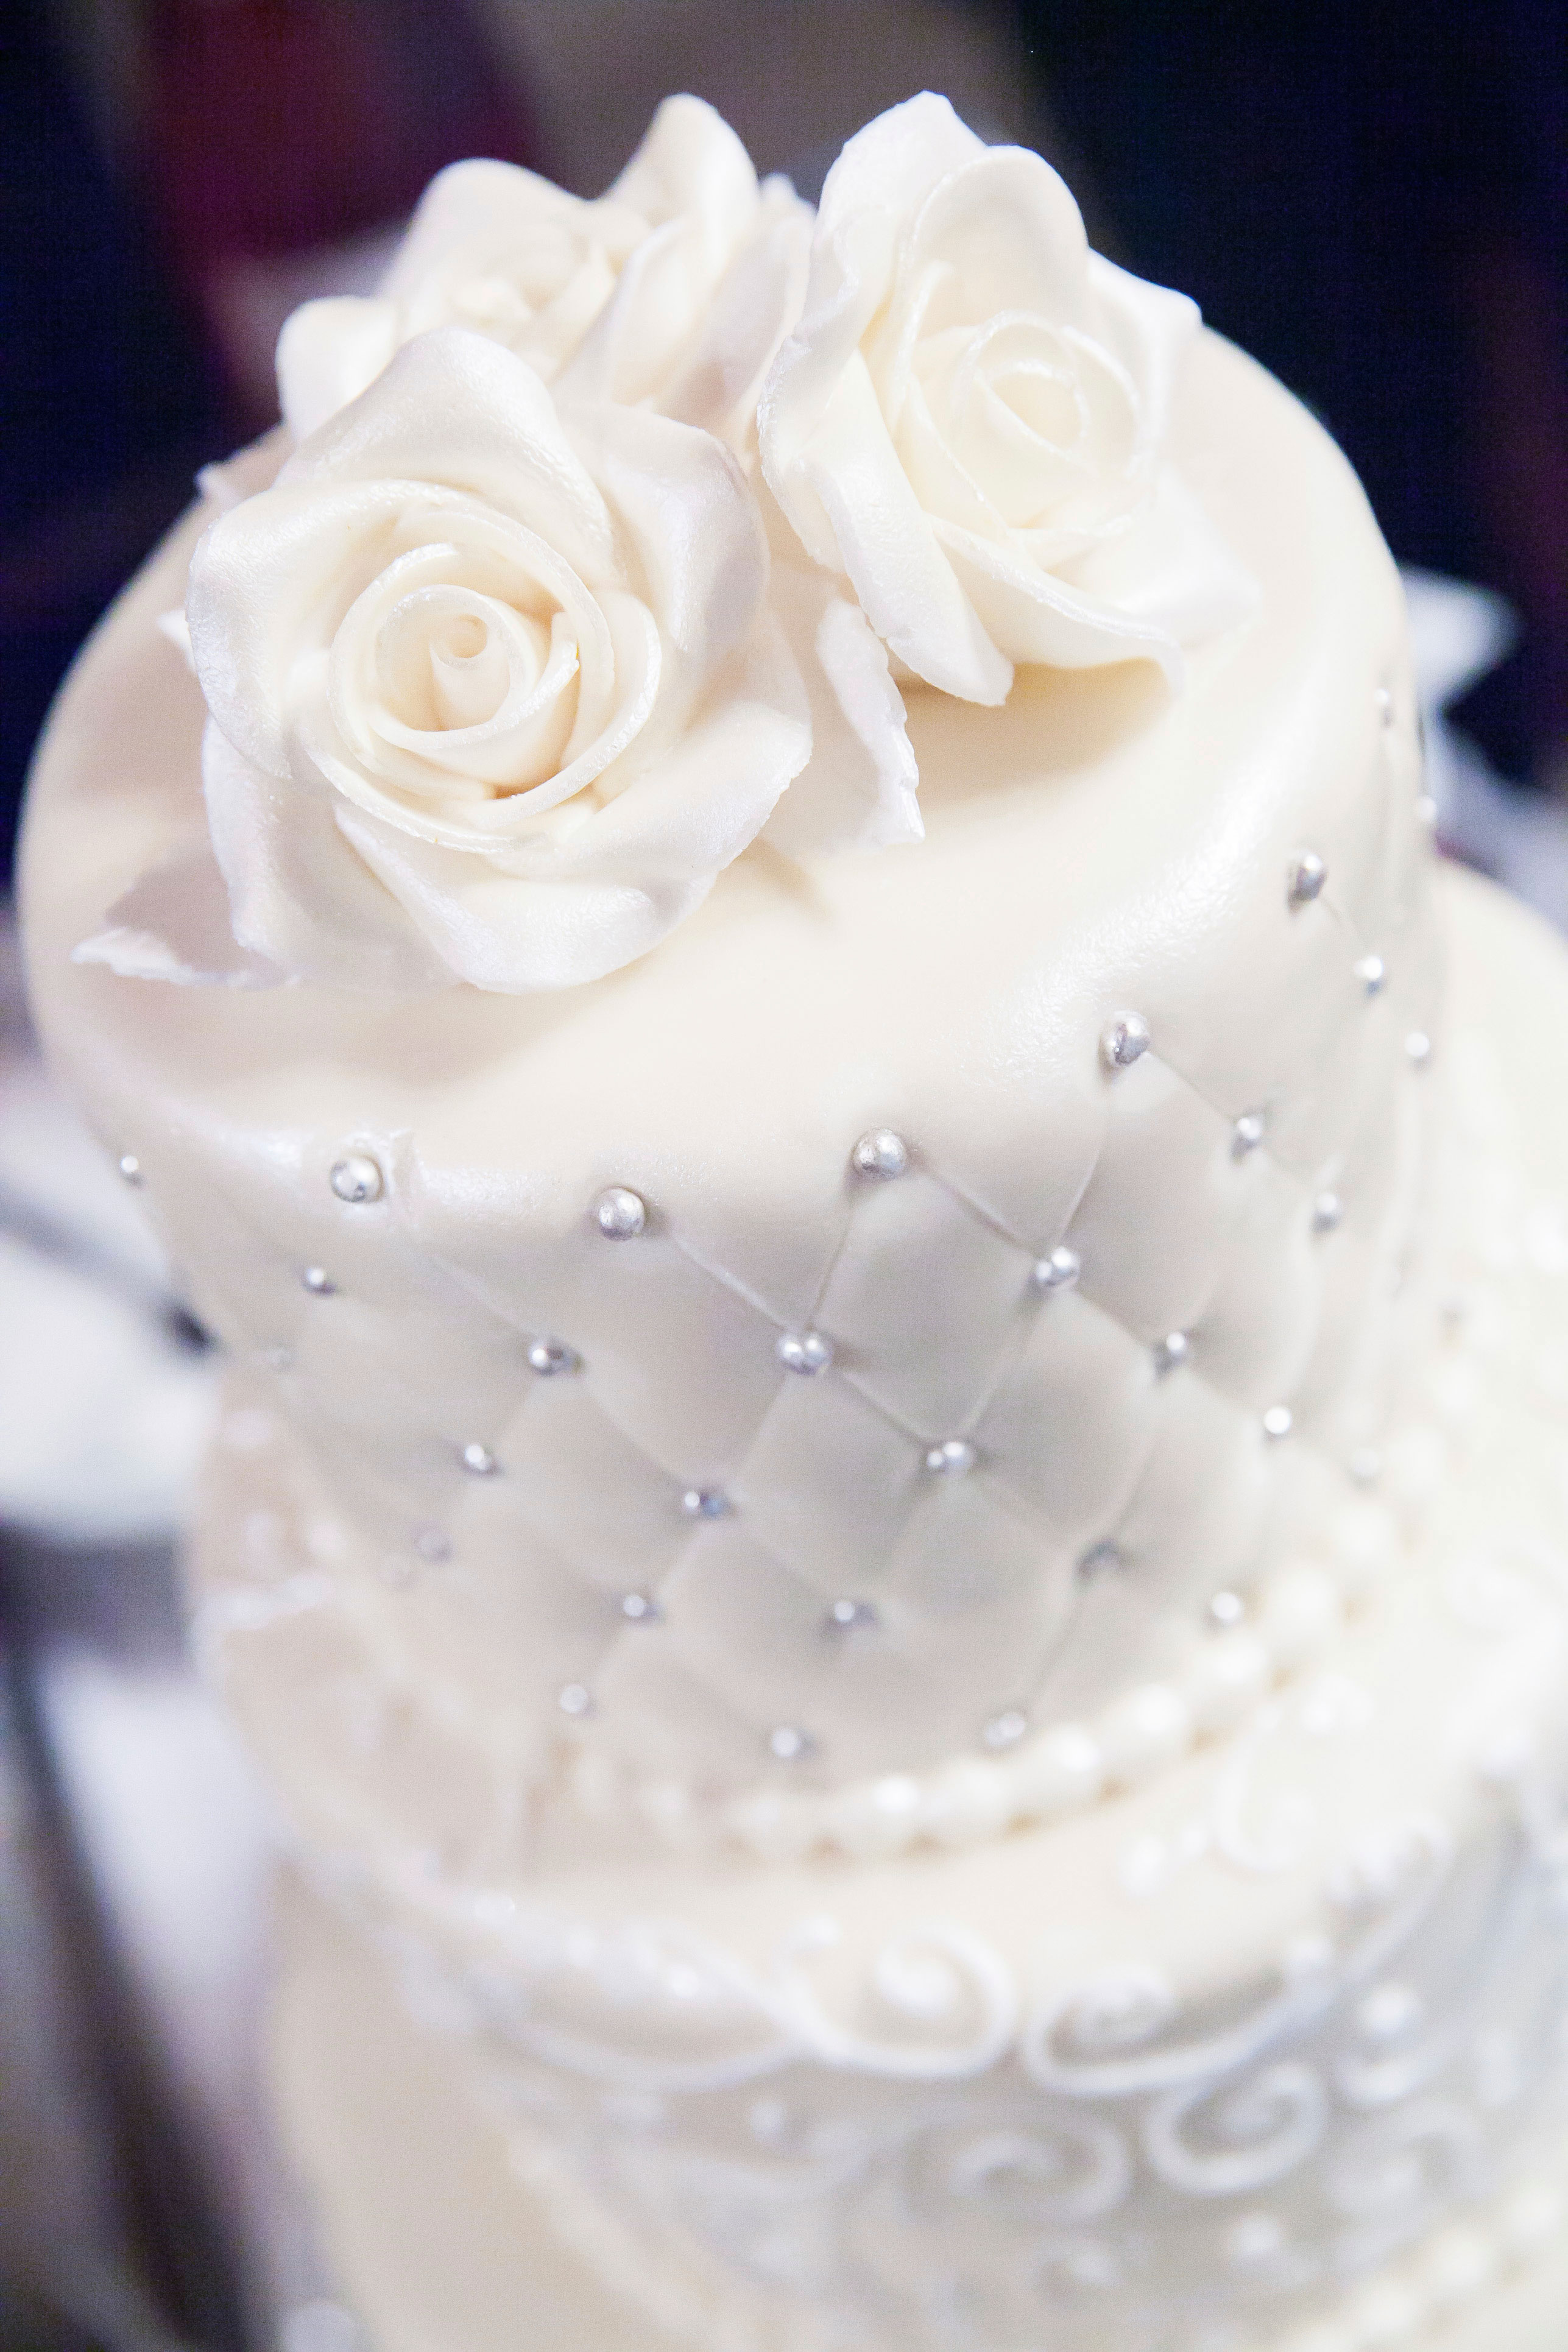 Saving the Top Tier of Your Wedding Cake - Topsy Turvy Cake Design